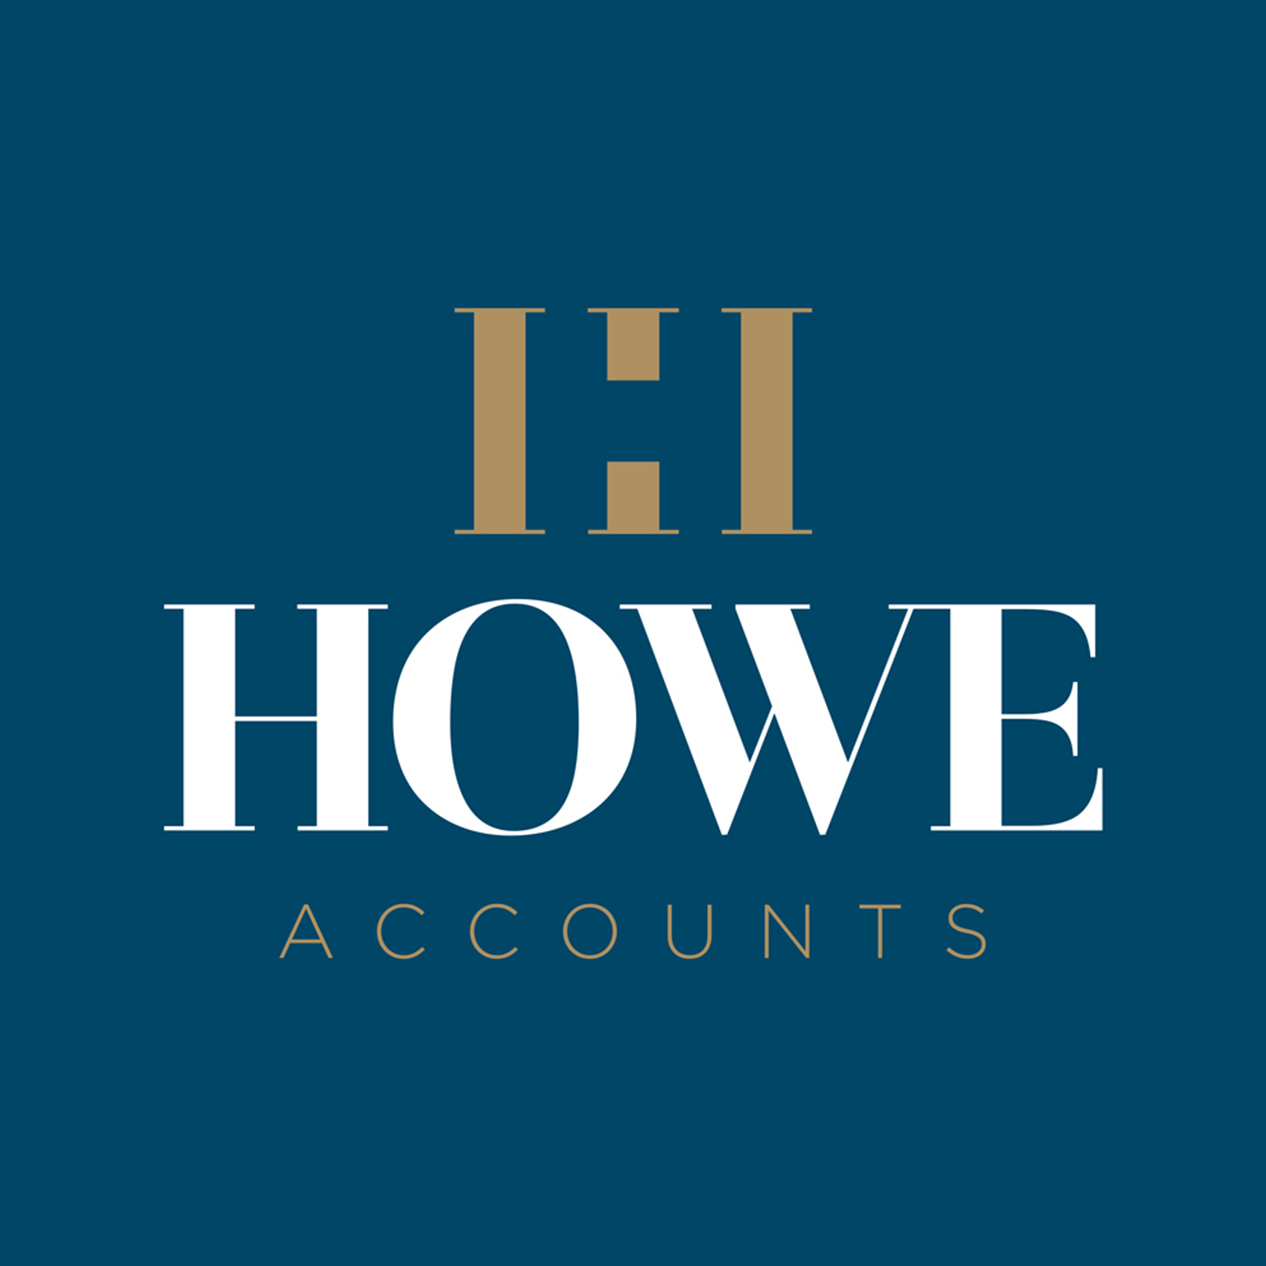 Howe Accounts Logo Design Birmingham